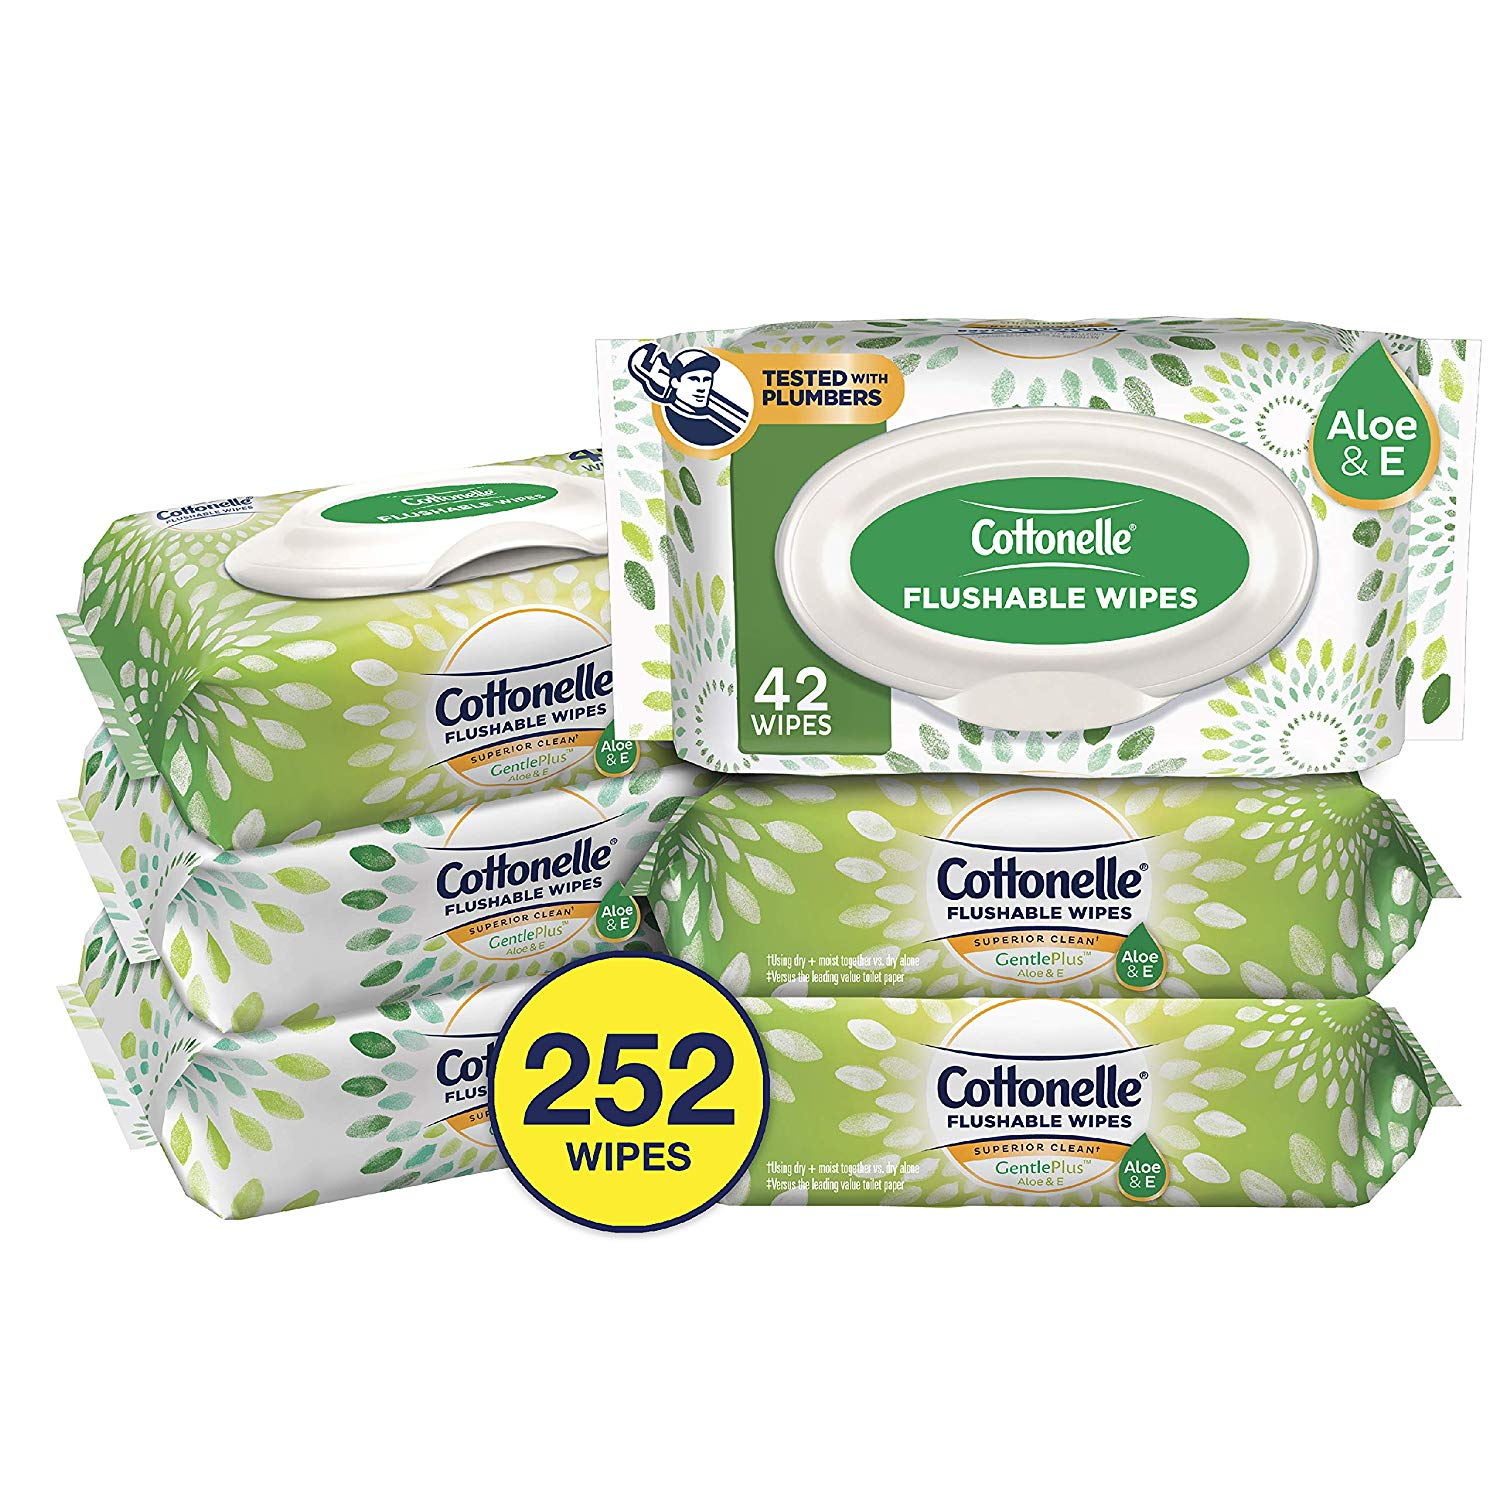 6-Pack 42-Count Cottonelle GentlePlus Flushable Wipes w/ Aloe & Vitamin E (252 Total Wipes) $7.85 w/ S&S + Free Shipping